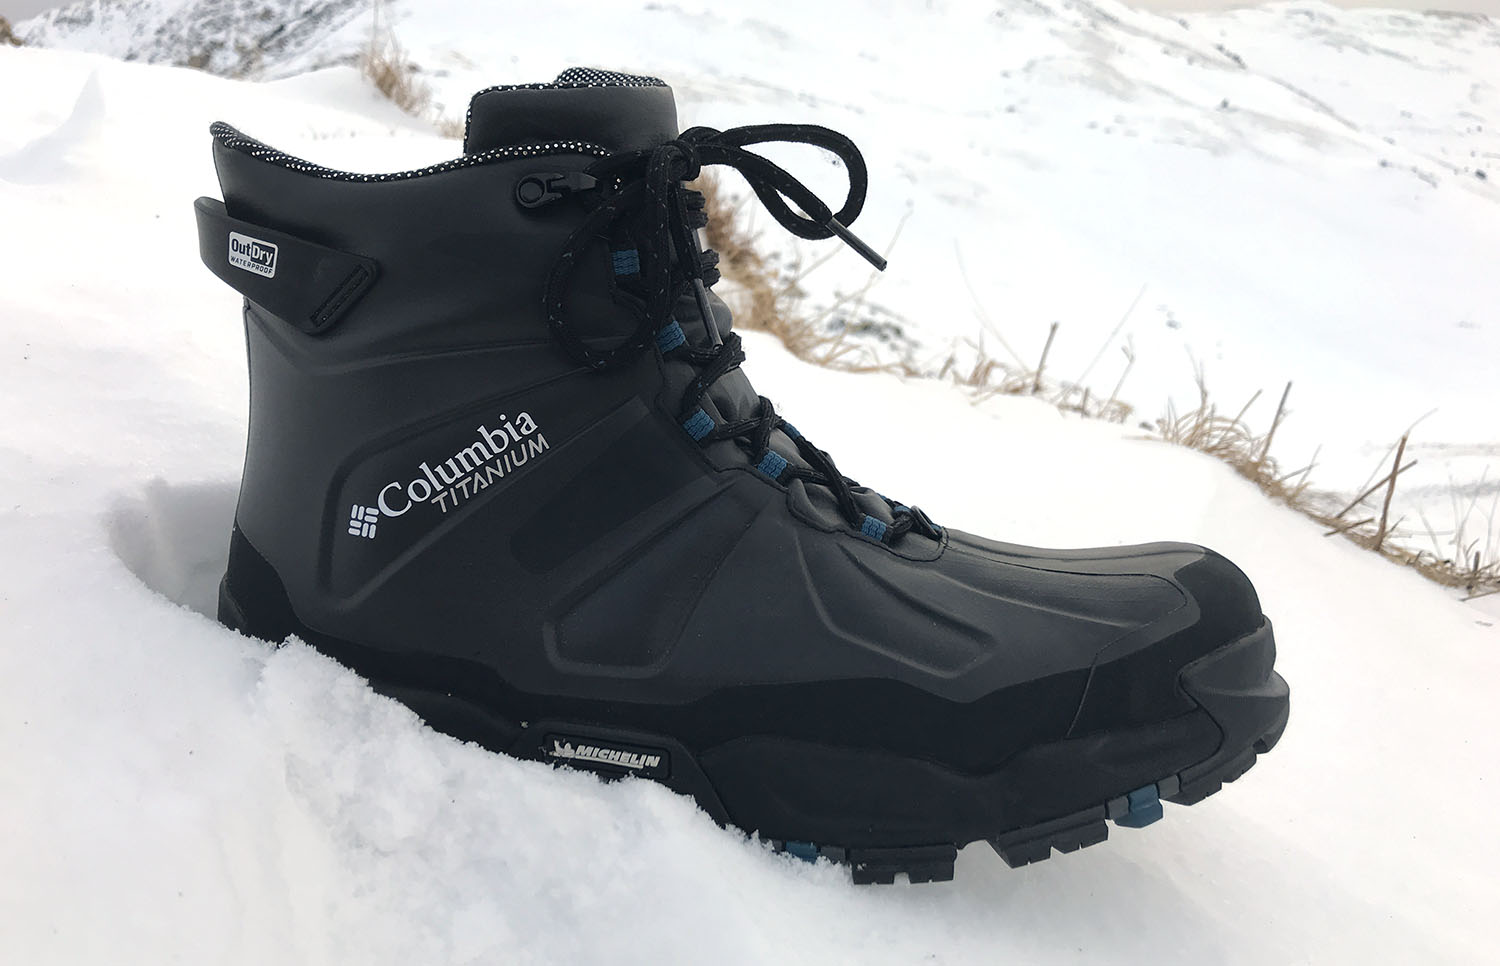 Best Winter Boots for Men - '18-'19 Season Snow Boots Review